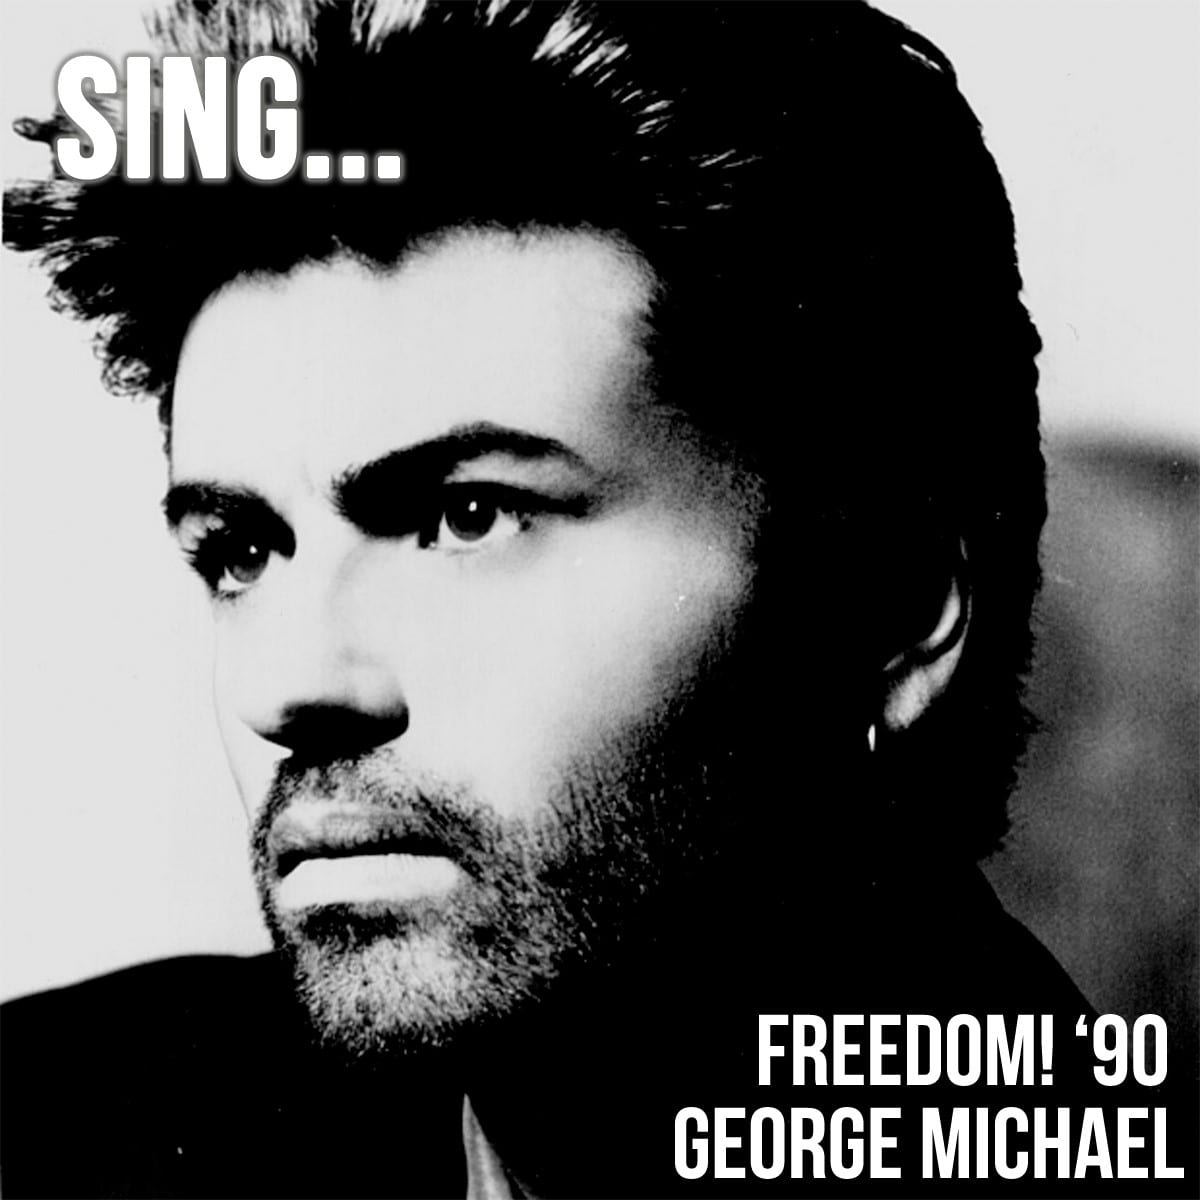 Sing George Michael  Freedom! '90! Drop In Rock Choir! at the Presentation House Theatre North Vancouver